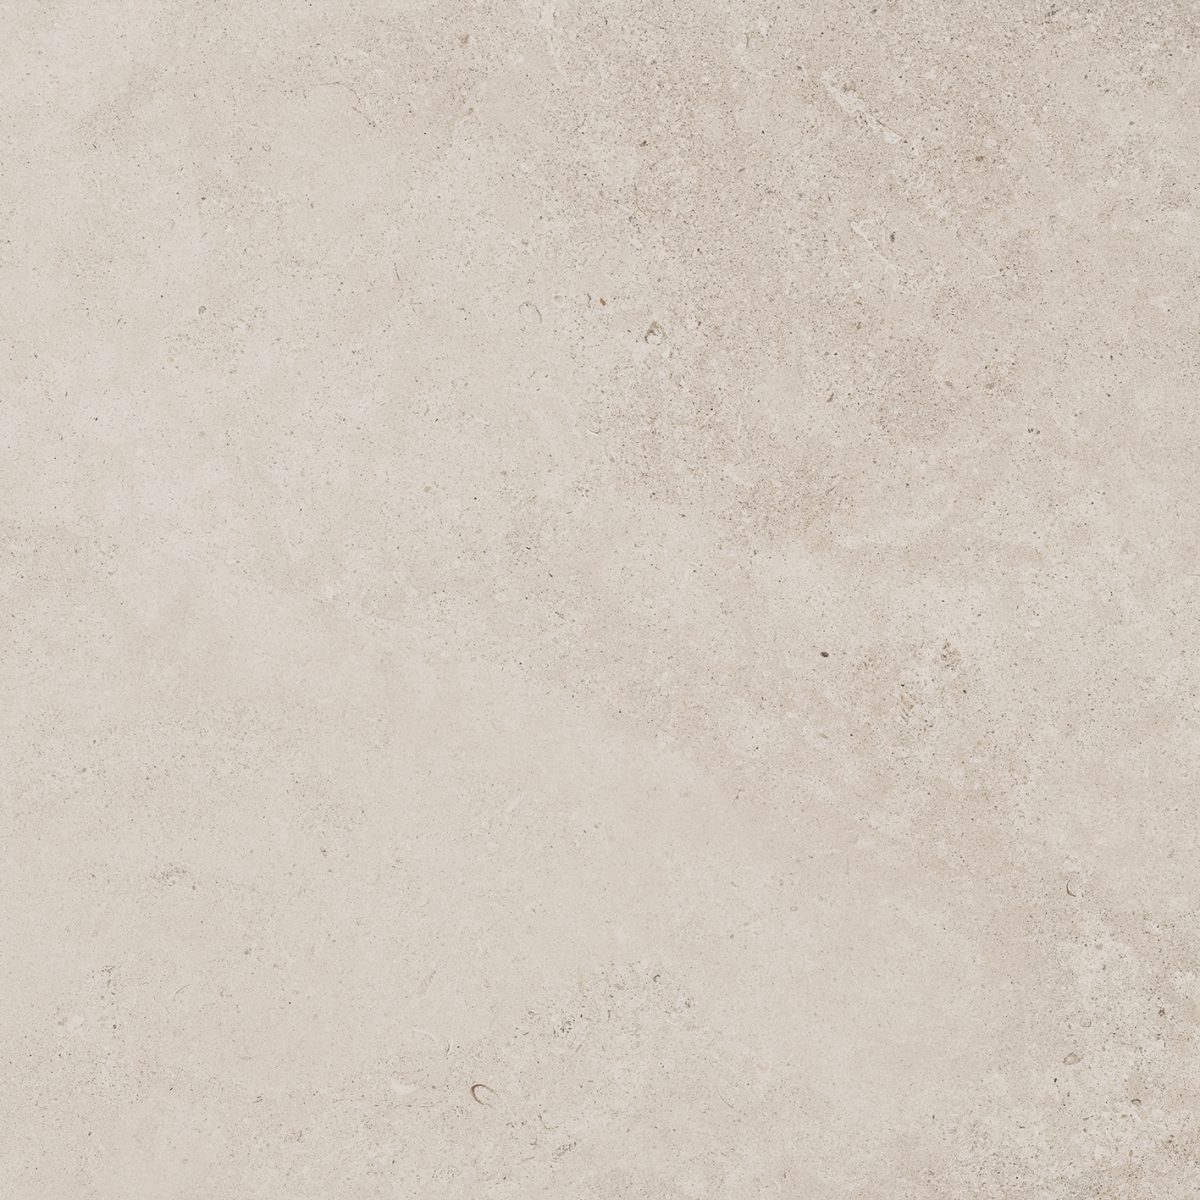 Porcelanosa Mosa-River Caliza Anti-Slip Tile 120 x 120 cm